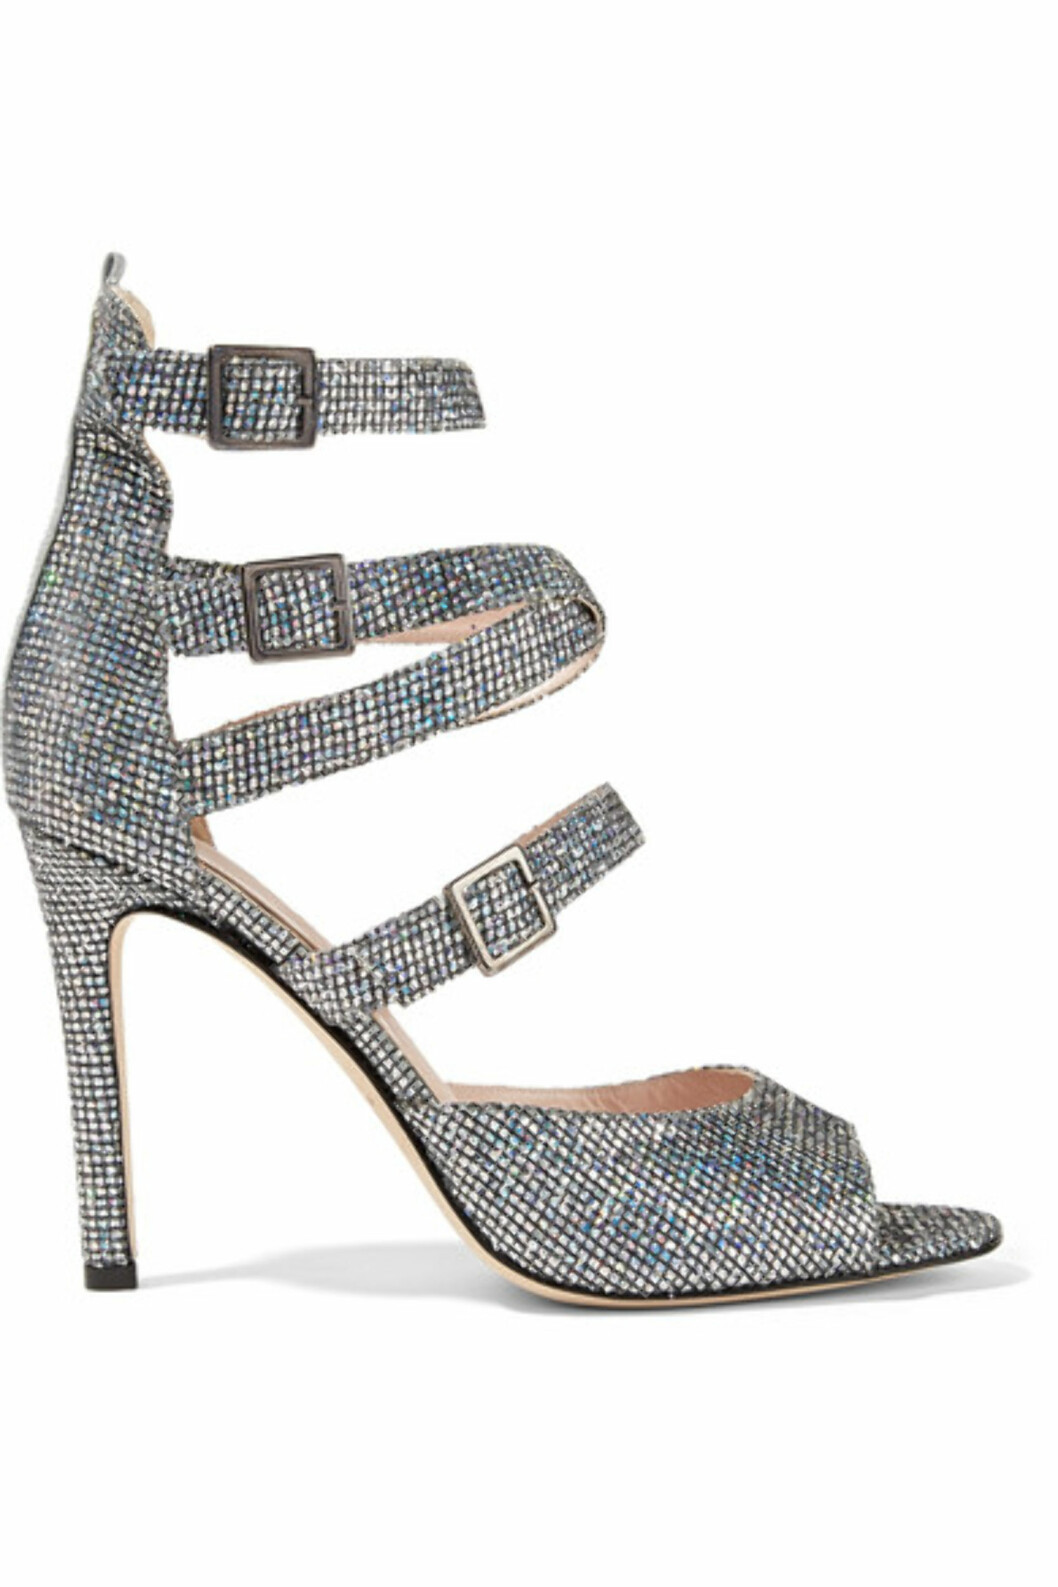 Hæler fra SJP By Sarah Jessica Parker via Net-a-porter.com | kr 3083 | https://www.net-a-porter.com/no/en/product/800978/sjp_by_sarah_jessica_parker/fugue-glittered-leather-sanda